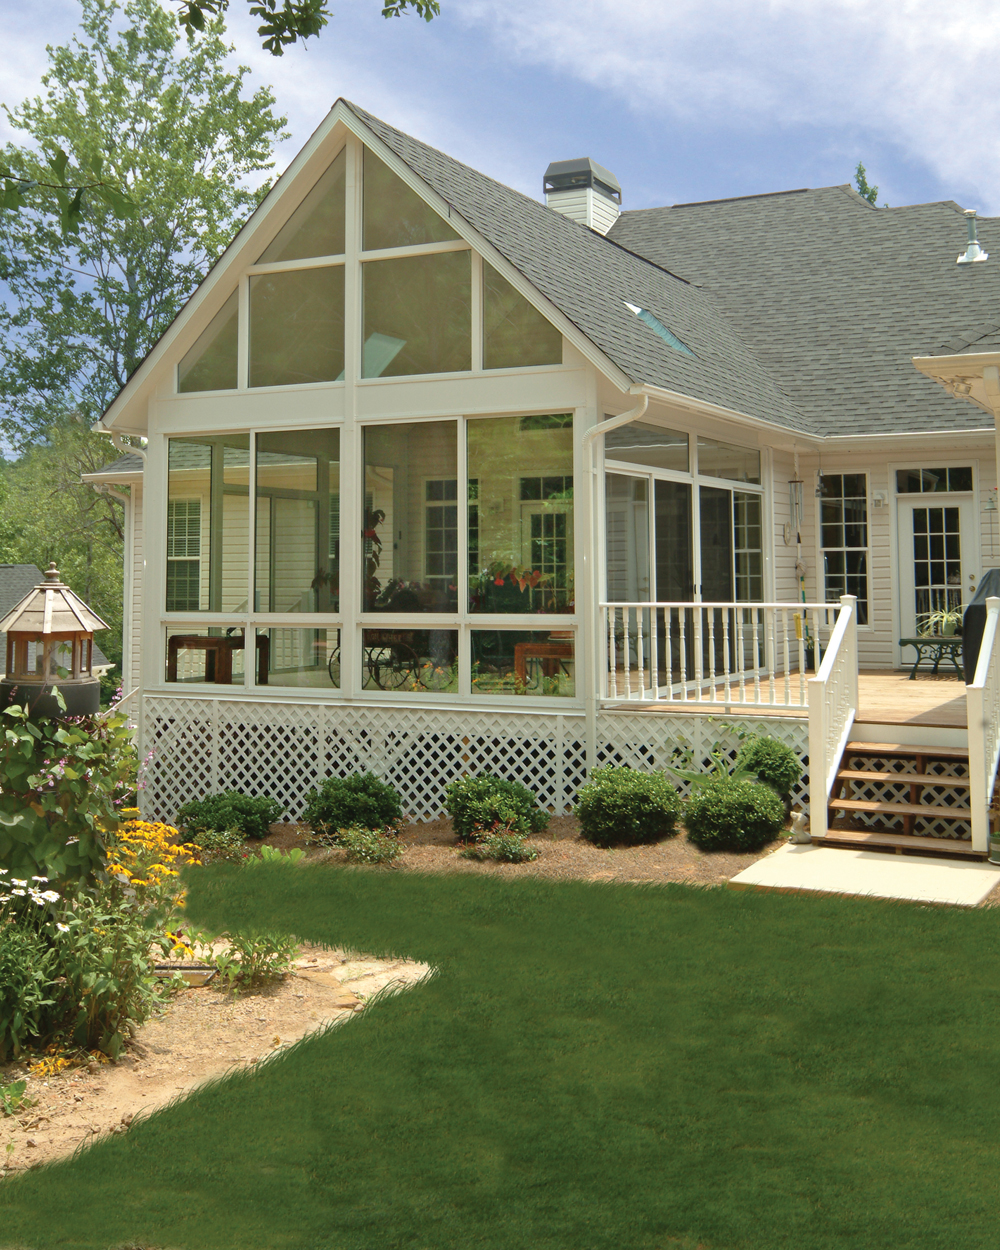 Patio enclosures inc provides five lessons for building for Building a sunroom addition